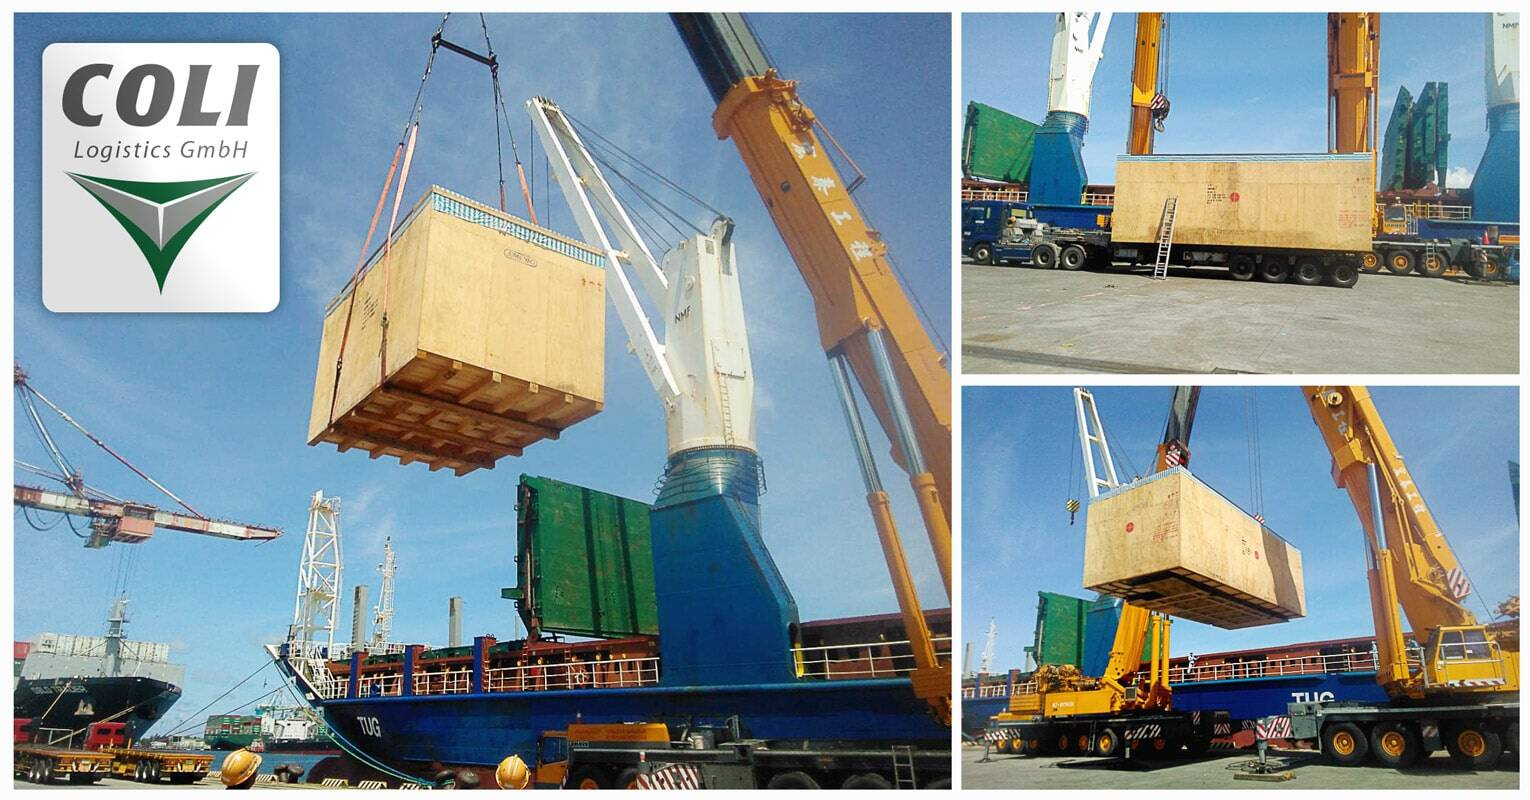 COLI Project Cargo Handled Breakbulk Cargo from Kaoshiung, Taiwan to Ambarli, Turkey